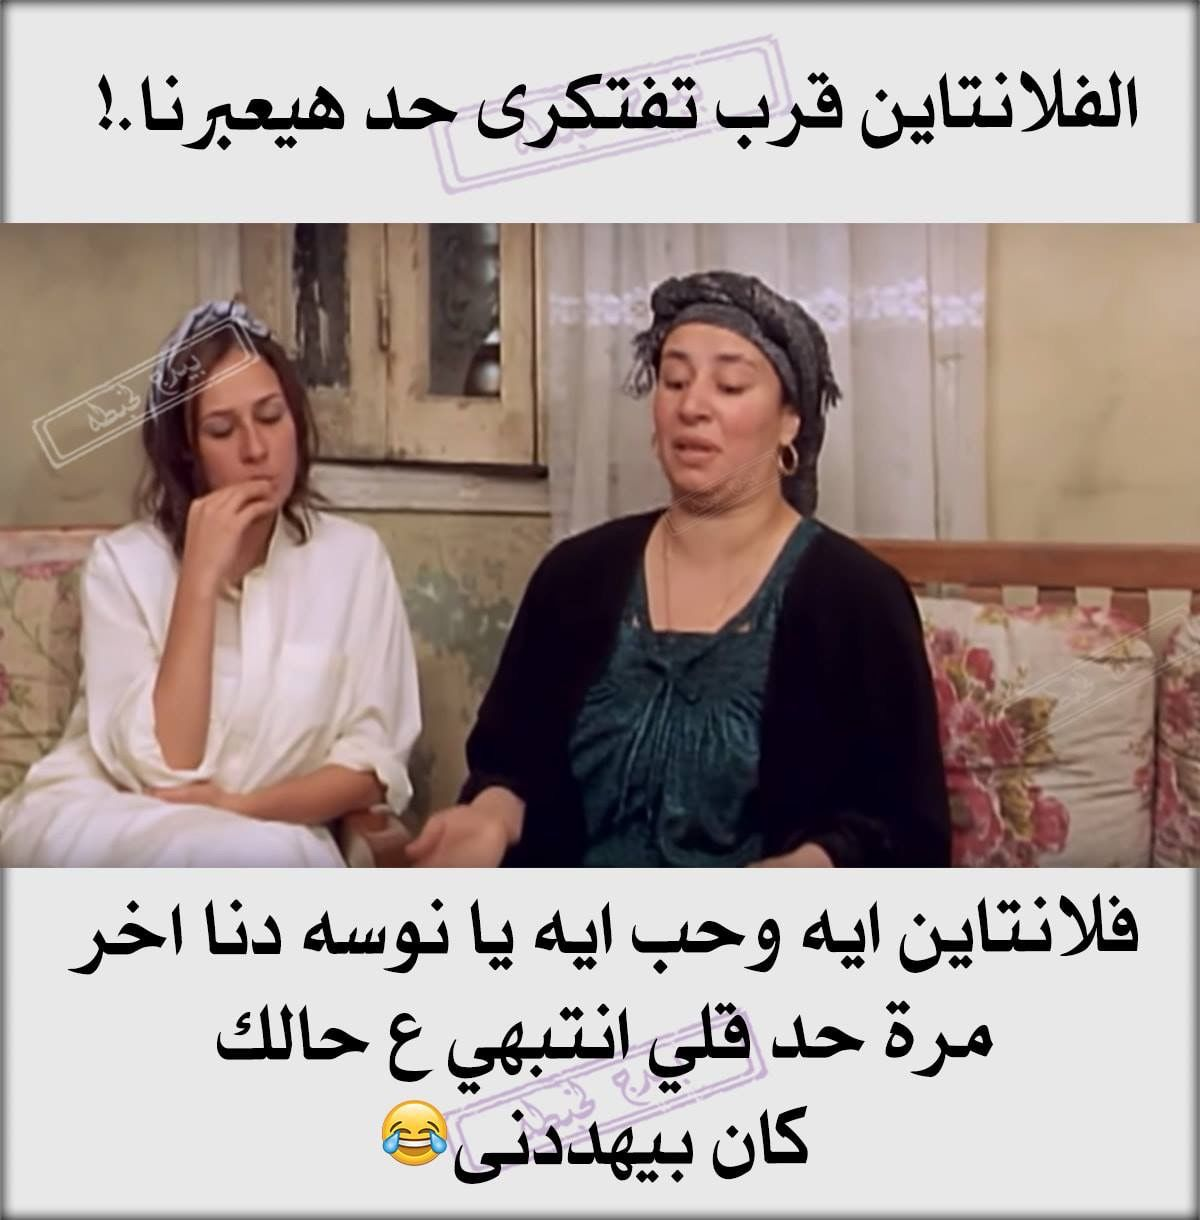 Pin By Nagla On Funny Funny Arabic Quotes Funny Snaps Arabic Memes